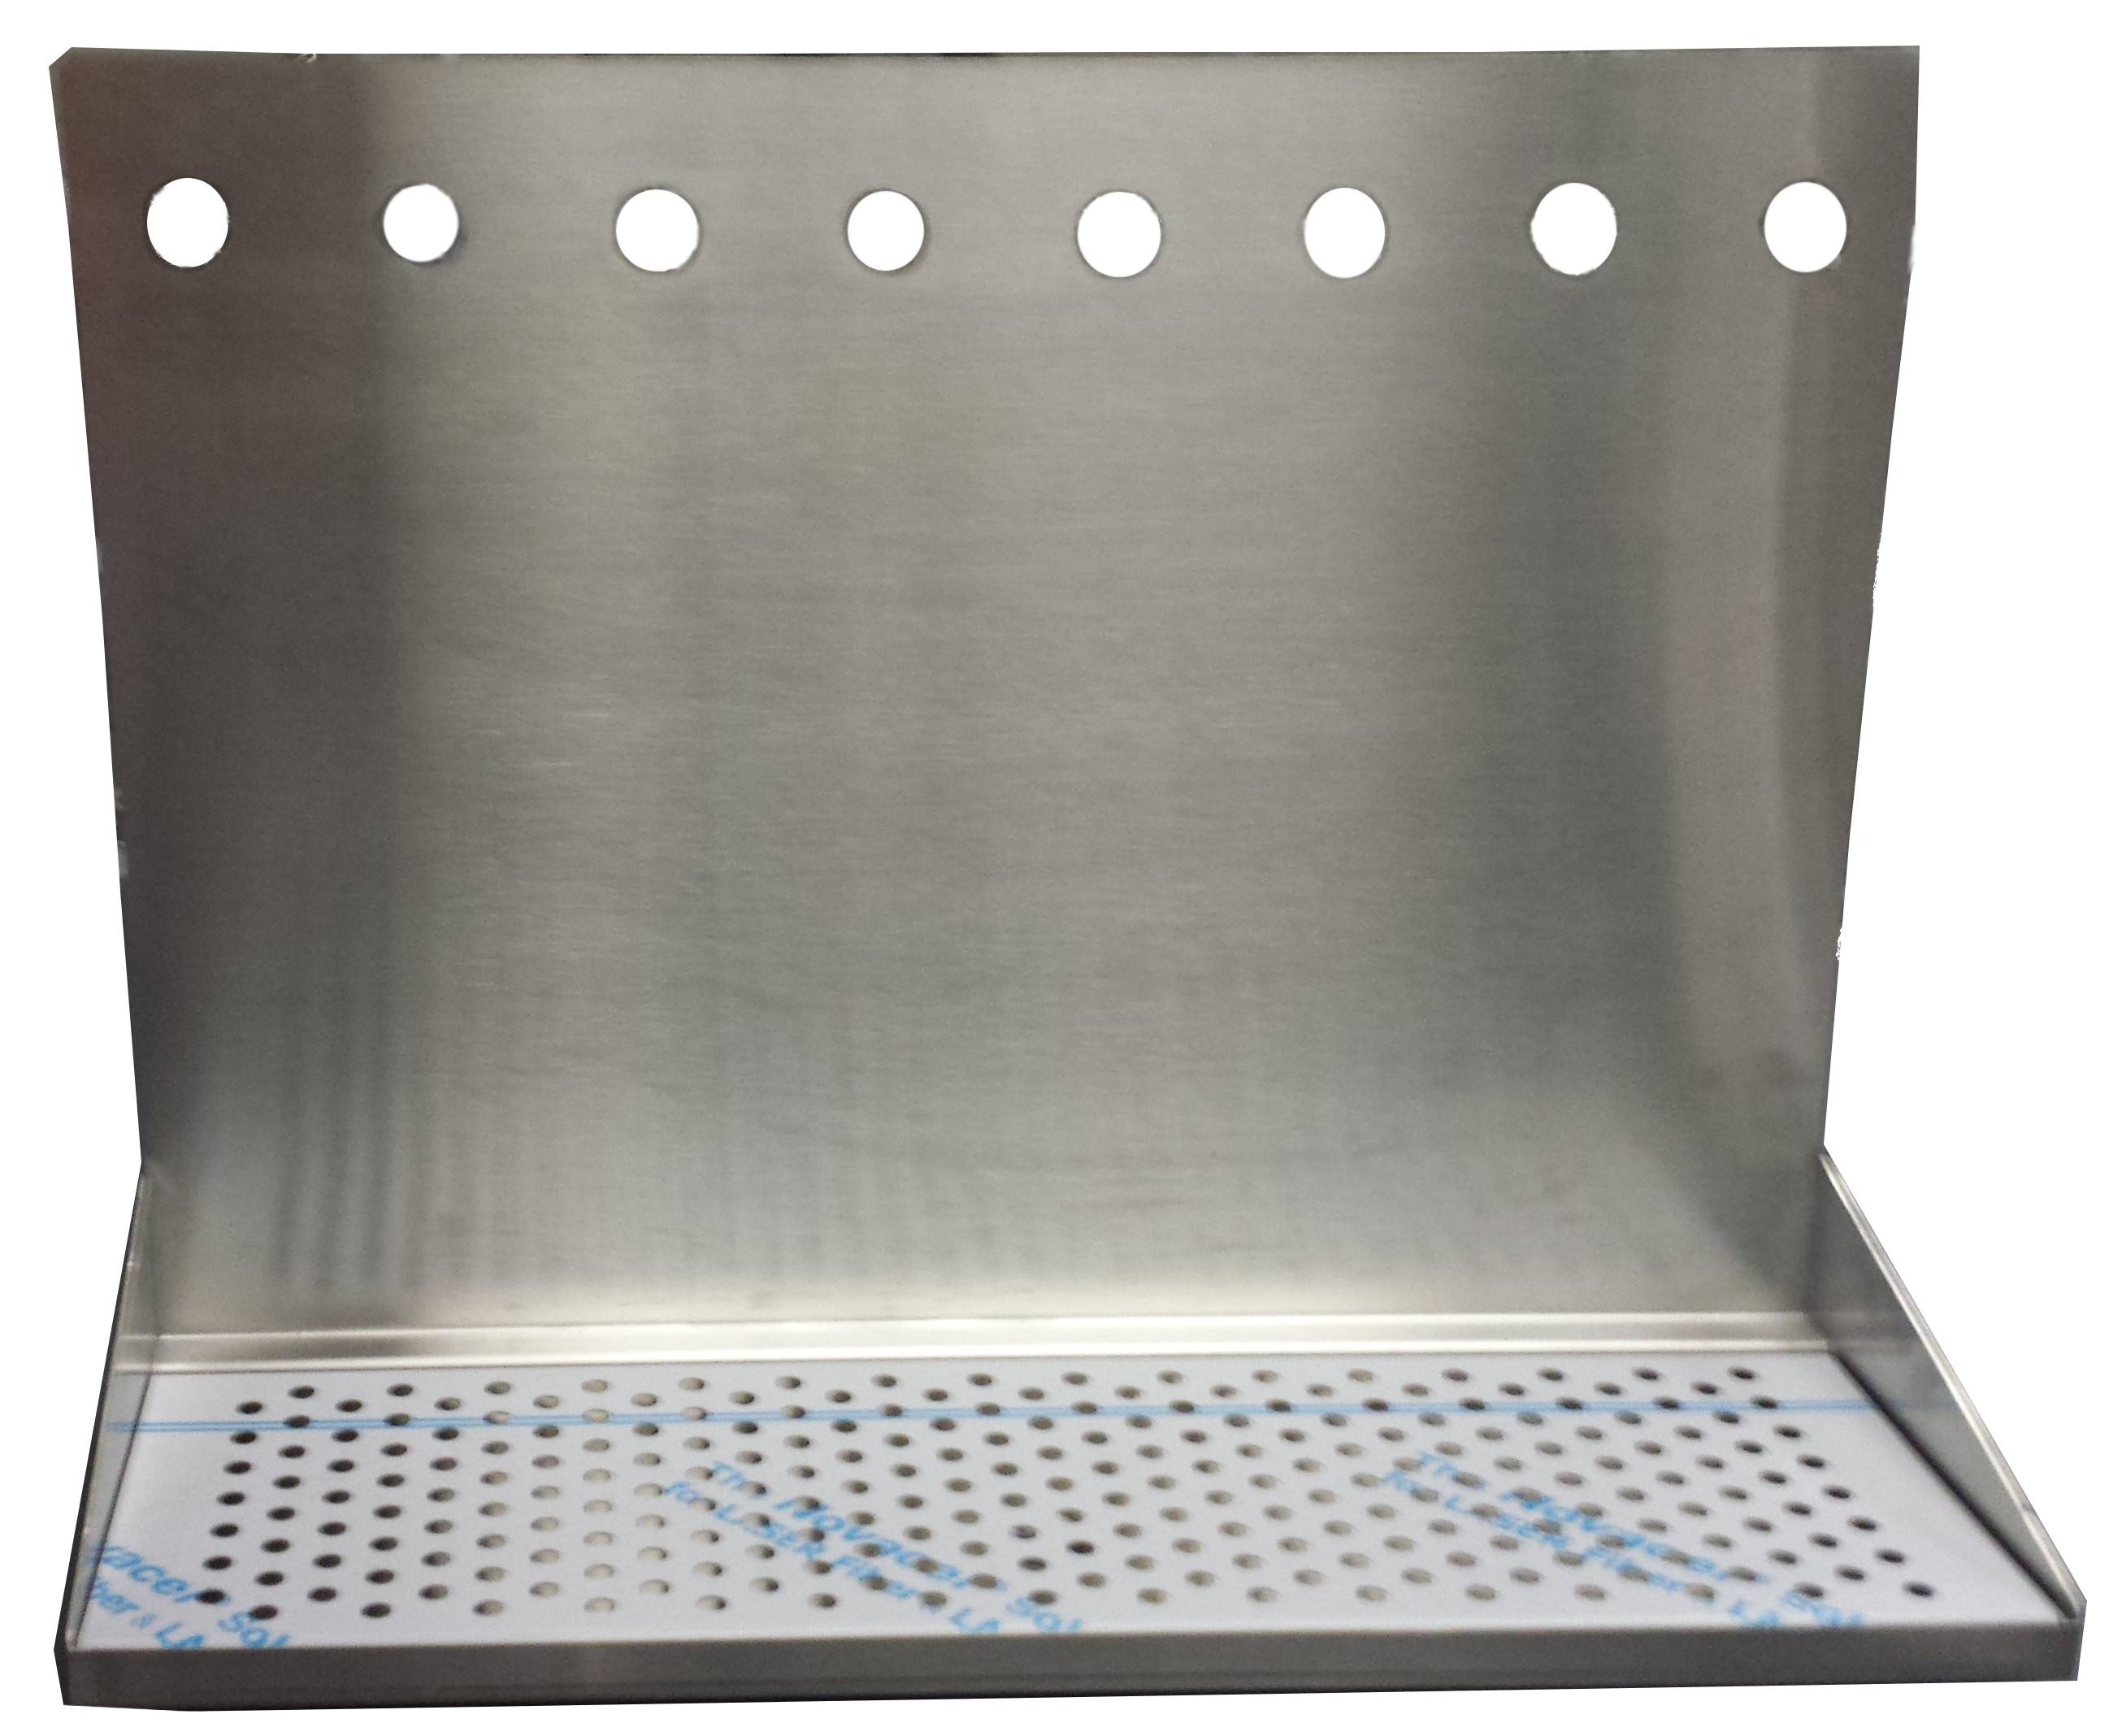 8 Hole Wall Mount Drip Tray 24 Quot With Drain And 18 Quot Backsplash